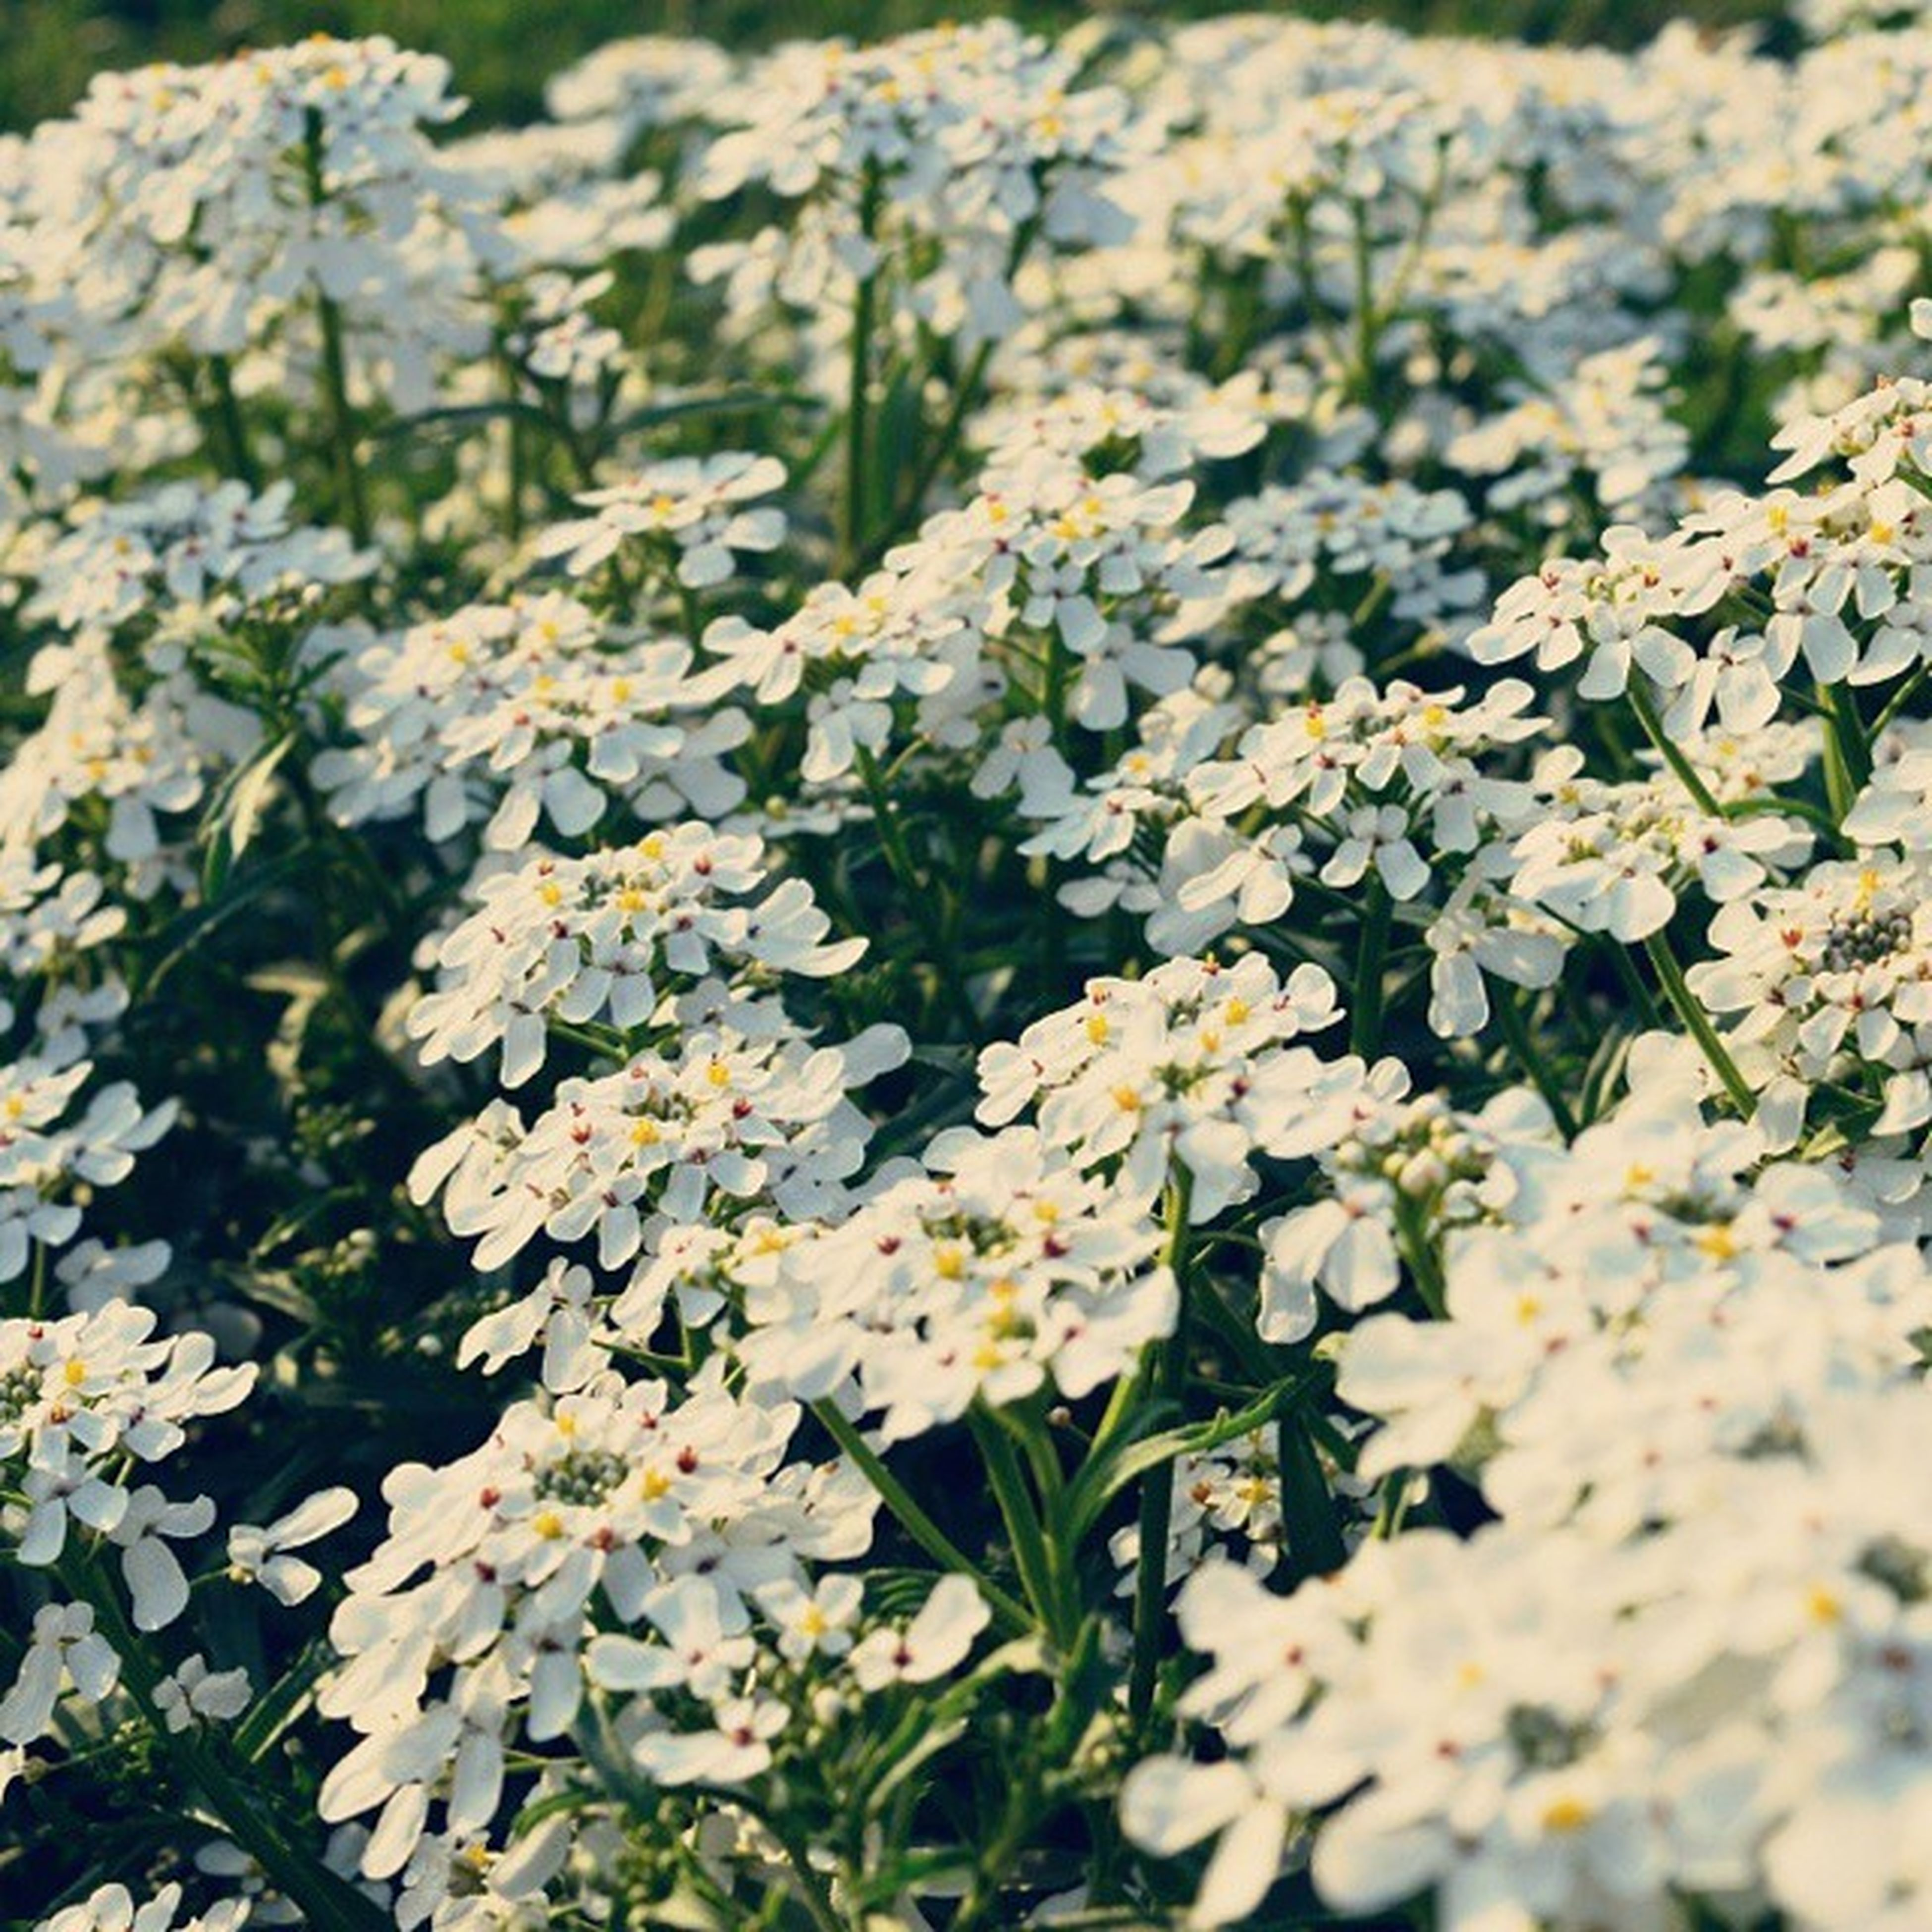 flower, growth, freshness, fragility, beauty in nature, petal, plant, nature, white color, blooming, flower head, field, high angle view, in bloom, abundance, leaf, close-up, blossom, day, outdoors